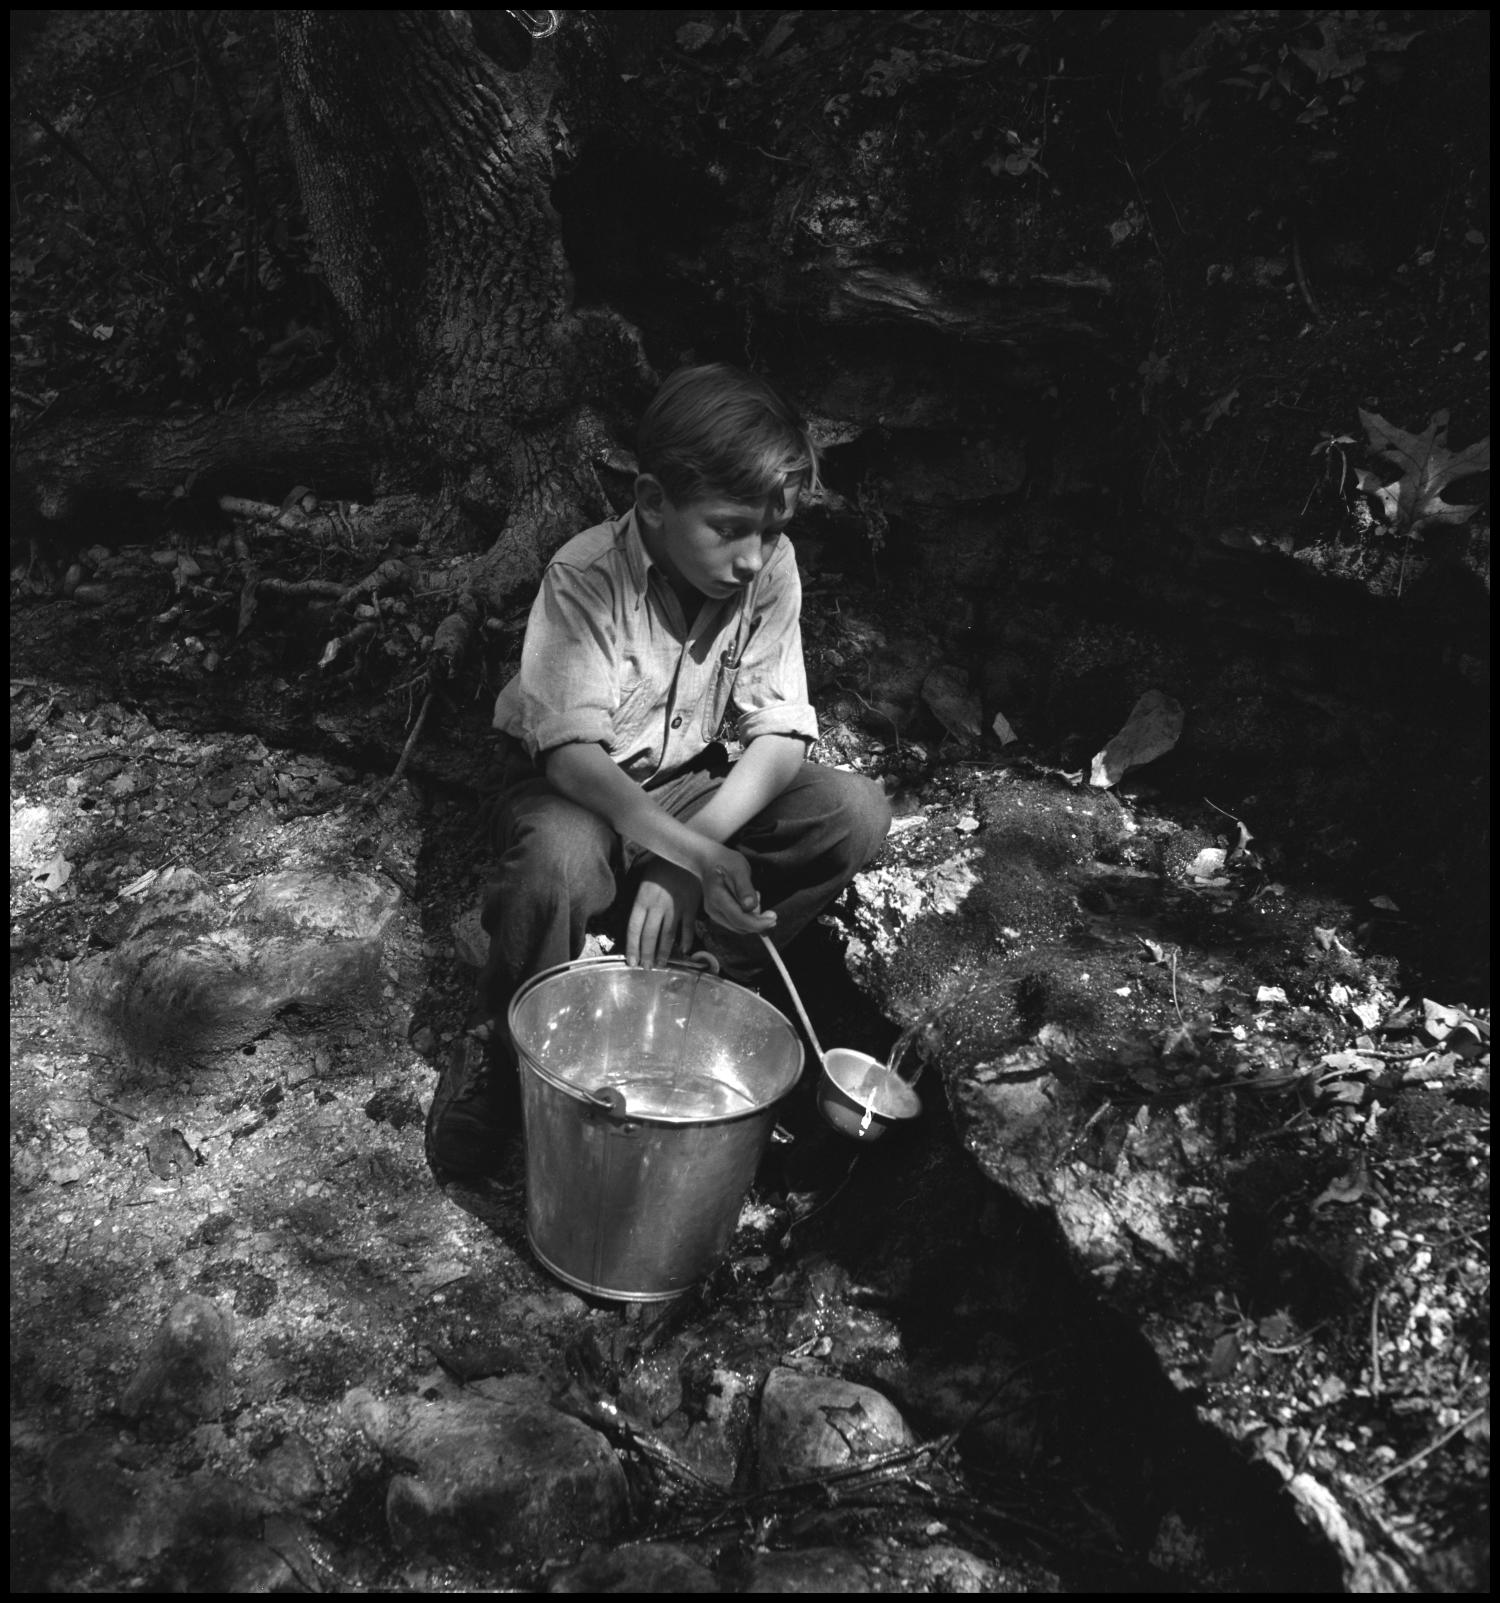 [Boy filling bucket from stream(1)], Photograph of a boy kneeling alongside a stream as he fills a bucket with water by using the ladle he holds in his right hand.,